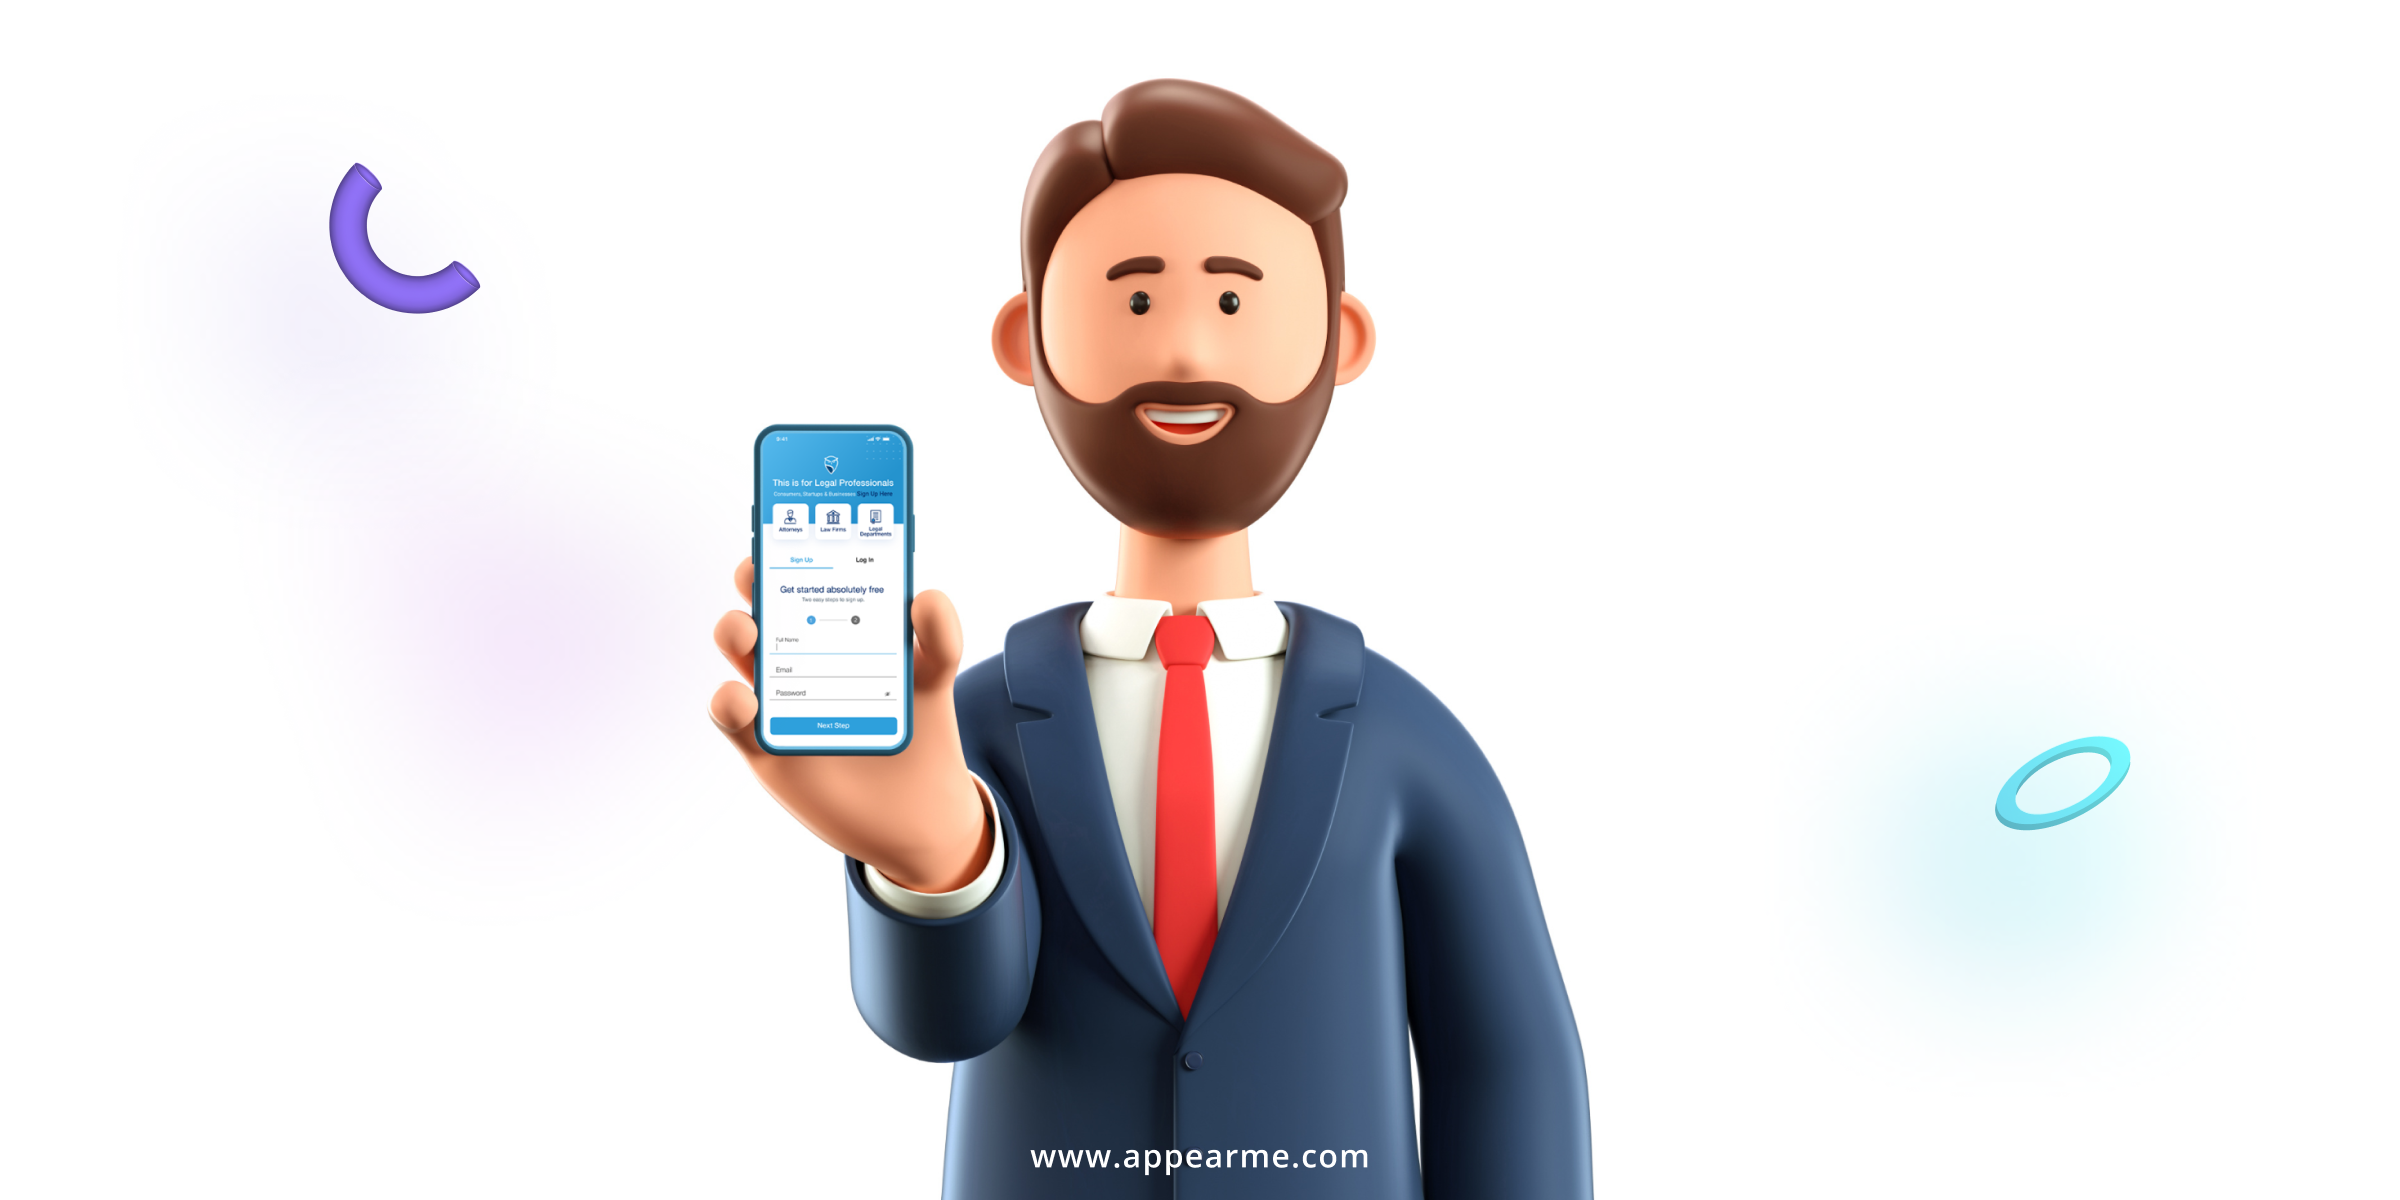 Have an Immediate Need for an Appearance Attorney? Download AppearMe